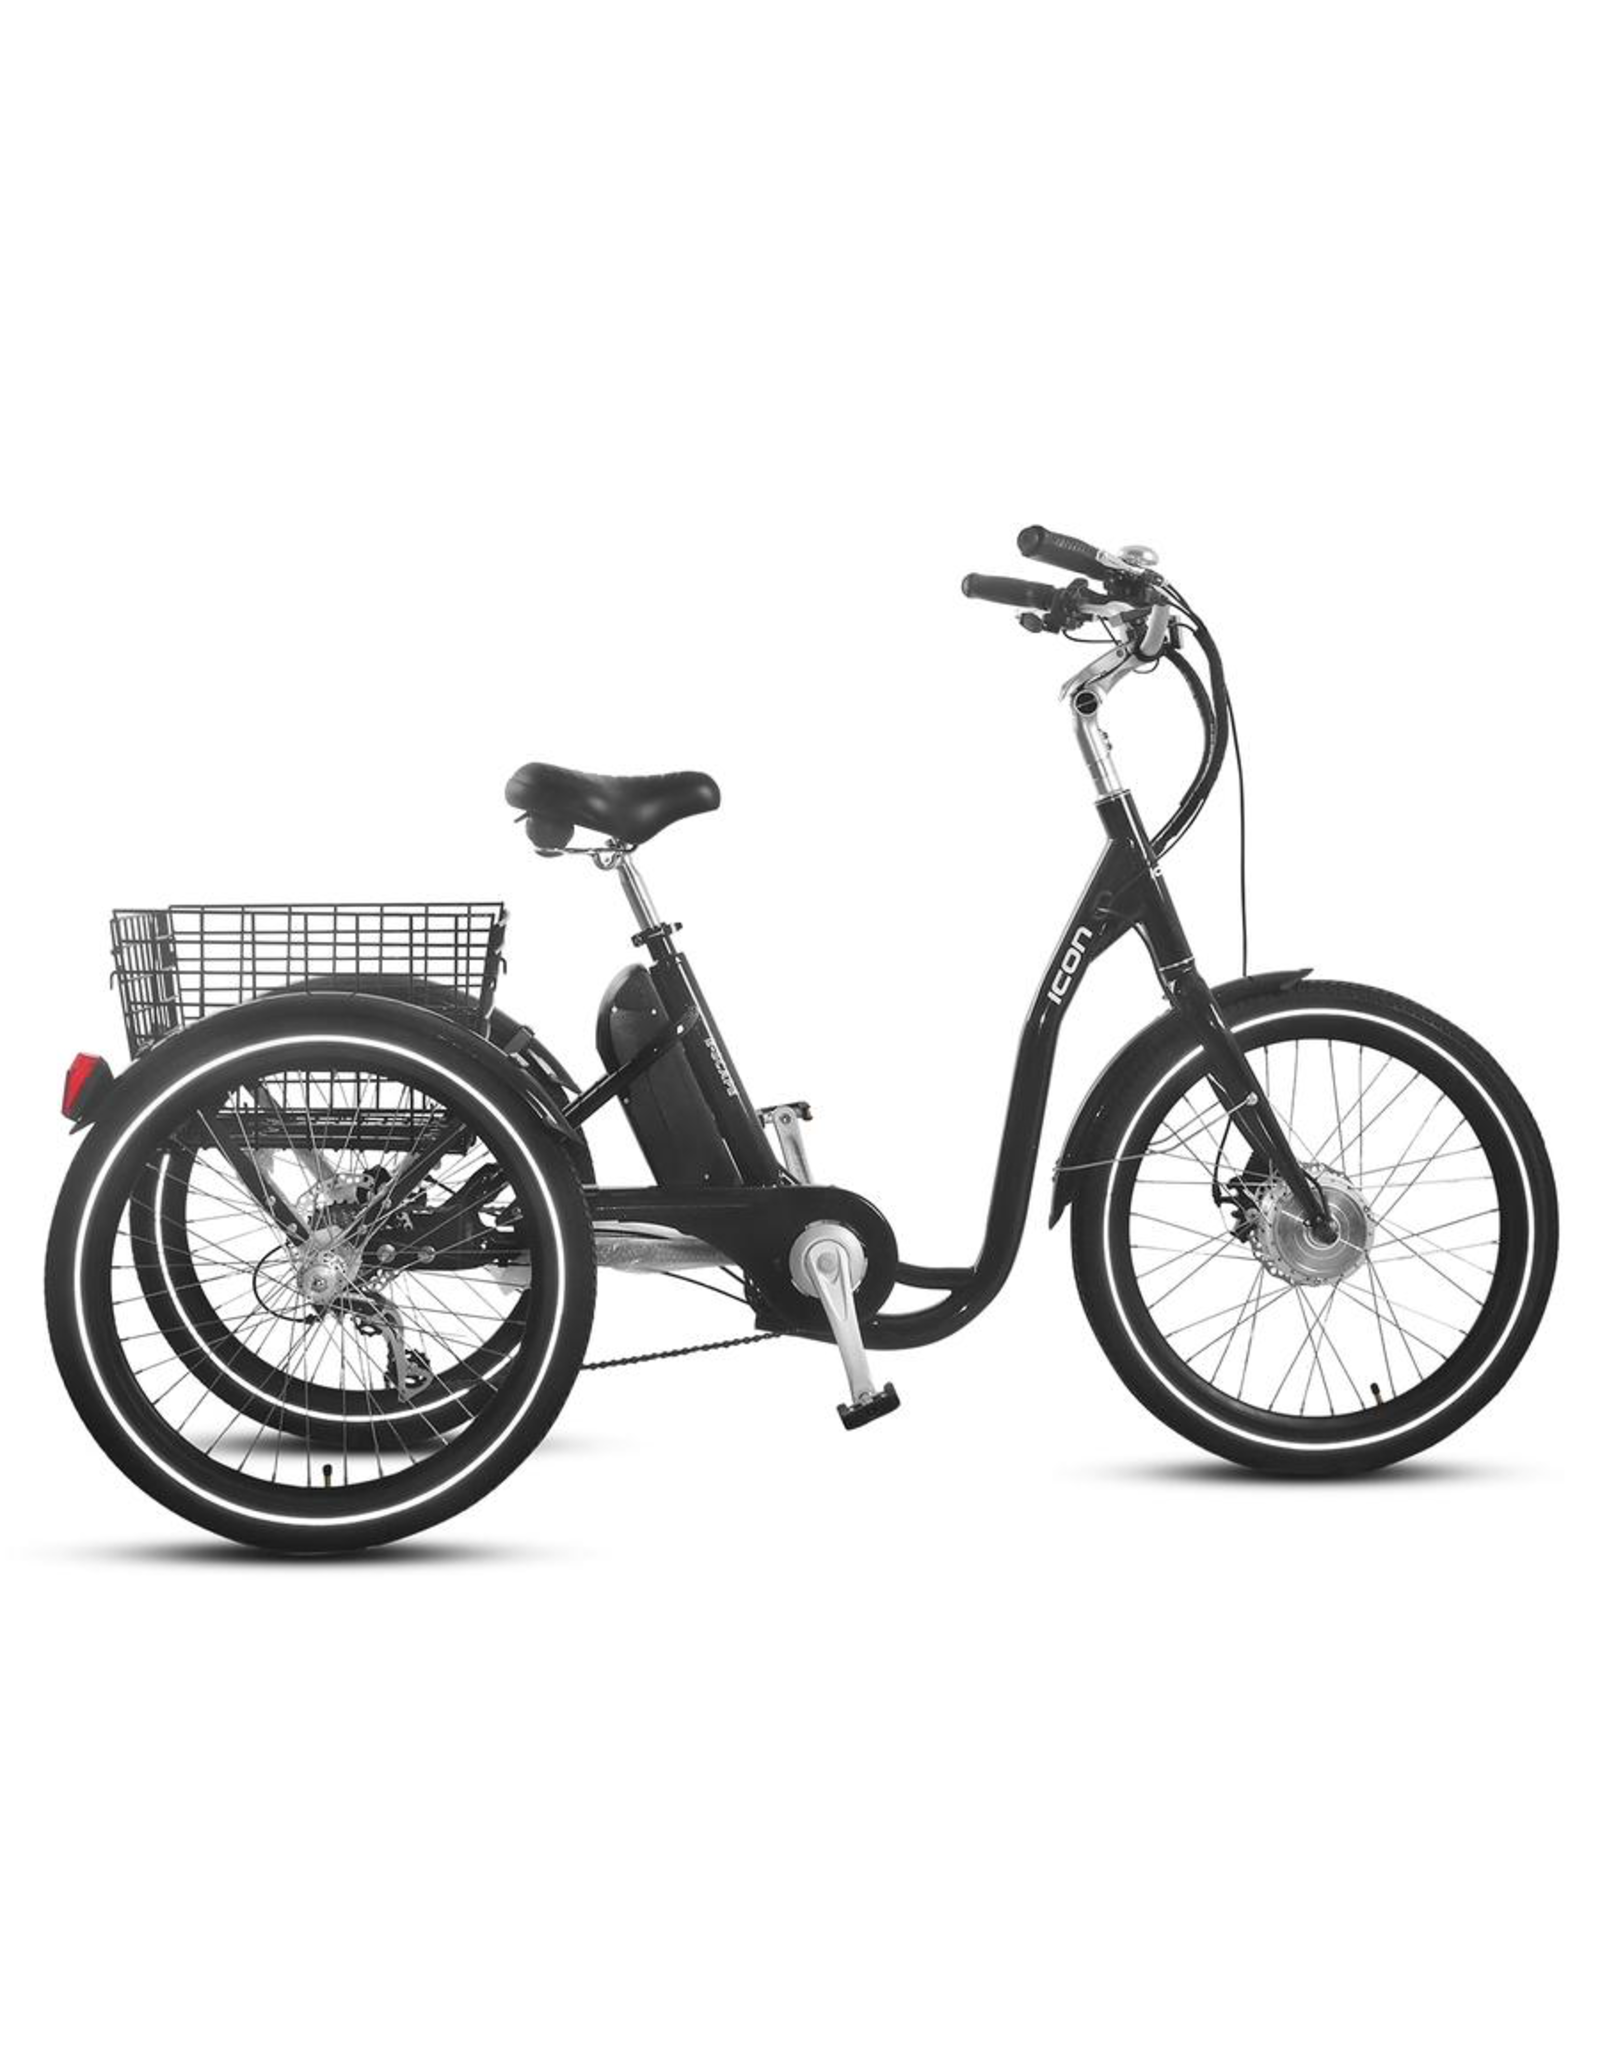 "XDS XDS ICON E-SCAPE 24"" 7-SPEED E-TRIKE GREY"